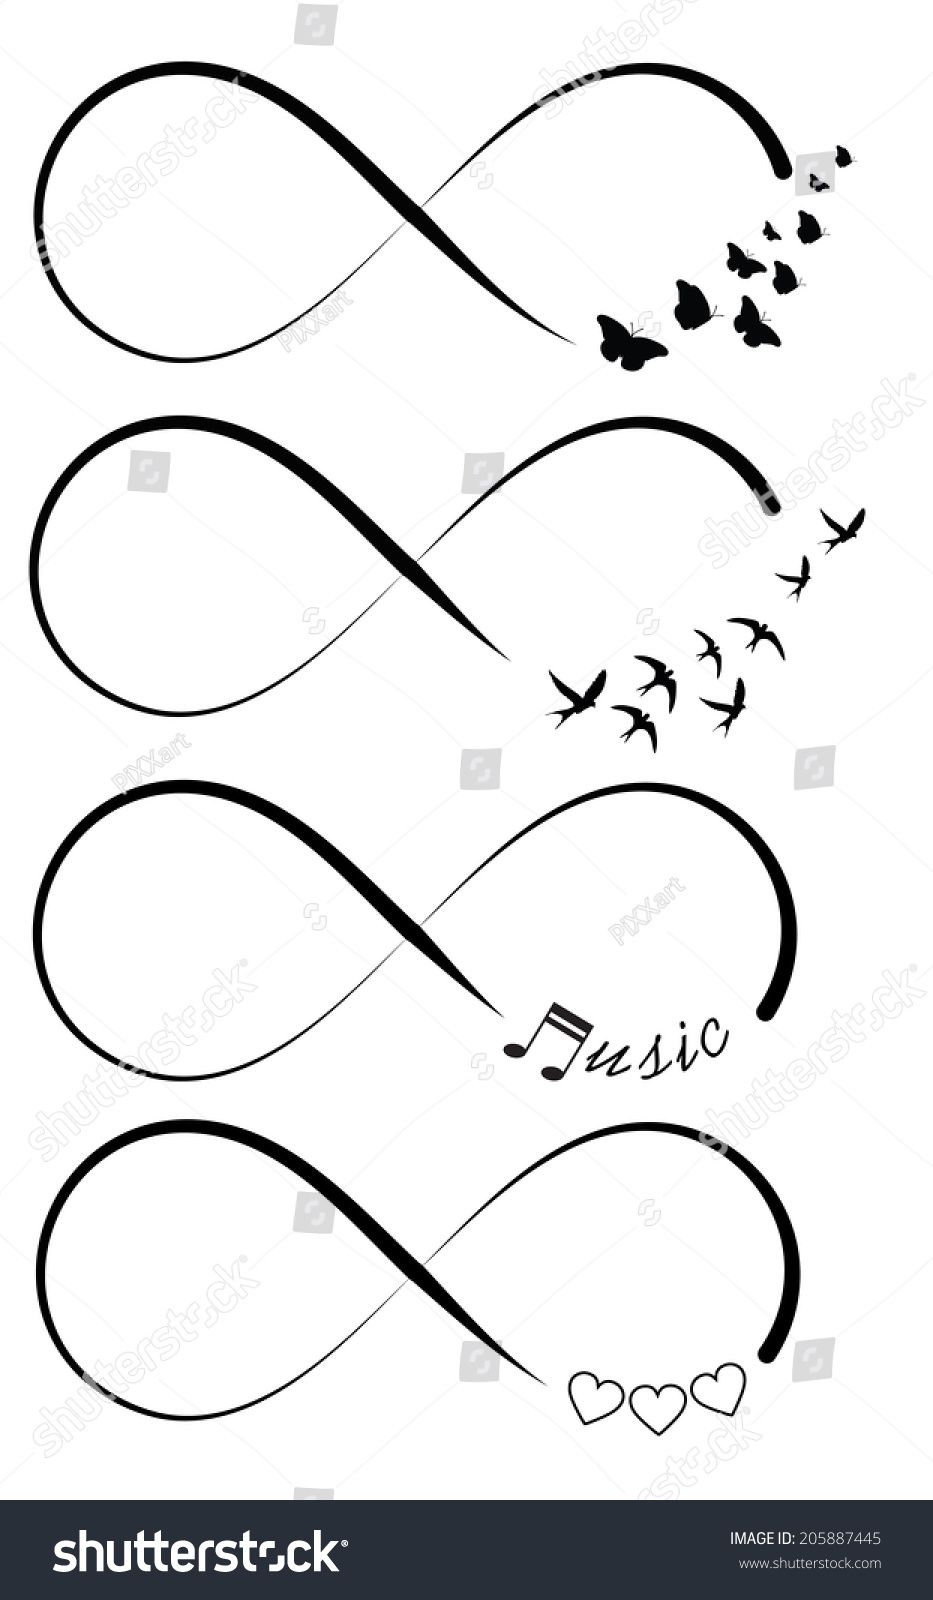 infinity symbols tatuajes posibles pinterest tattoos tattoo designs y symbolic tattoos. Black Bedroom Furniture Sets. Home Design Ideas